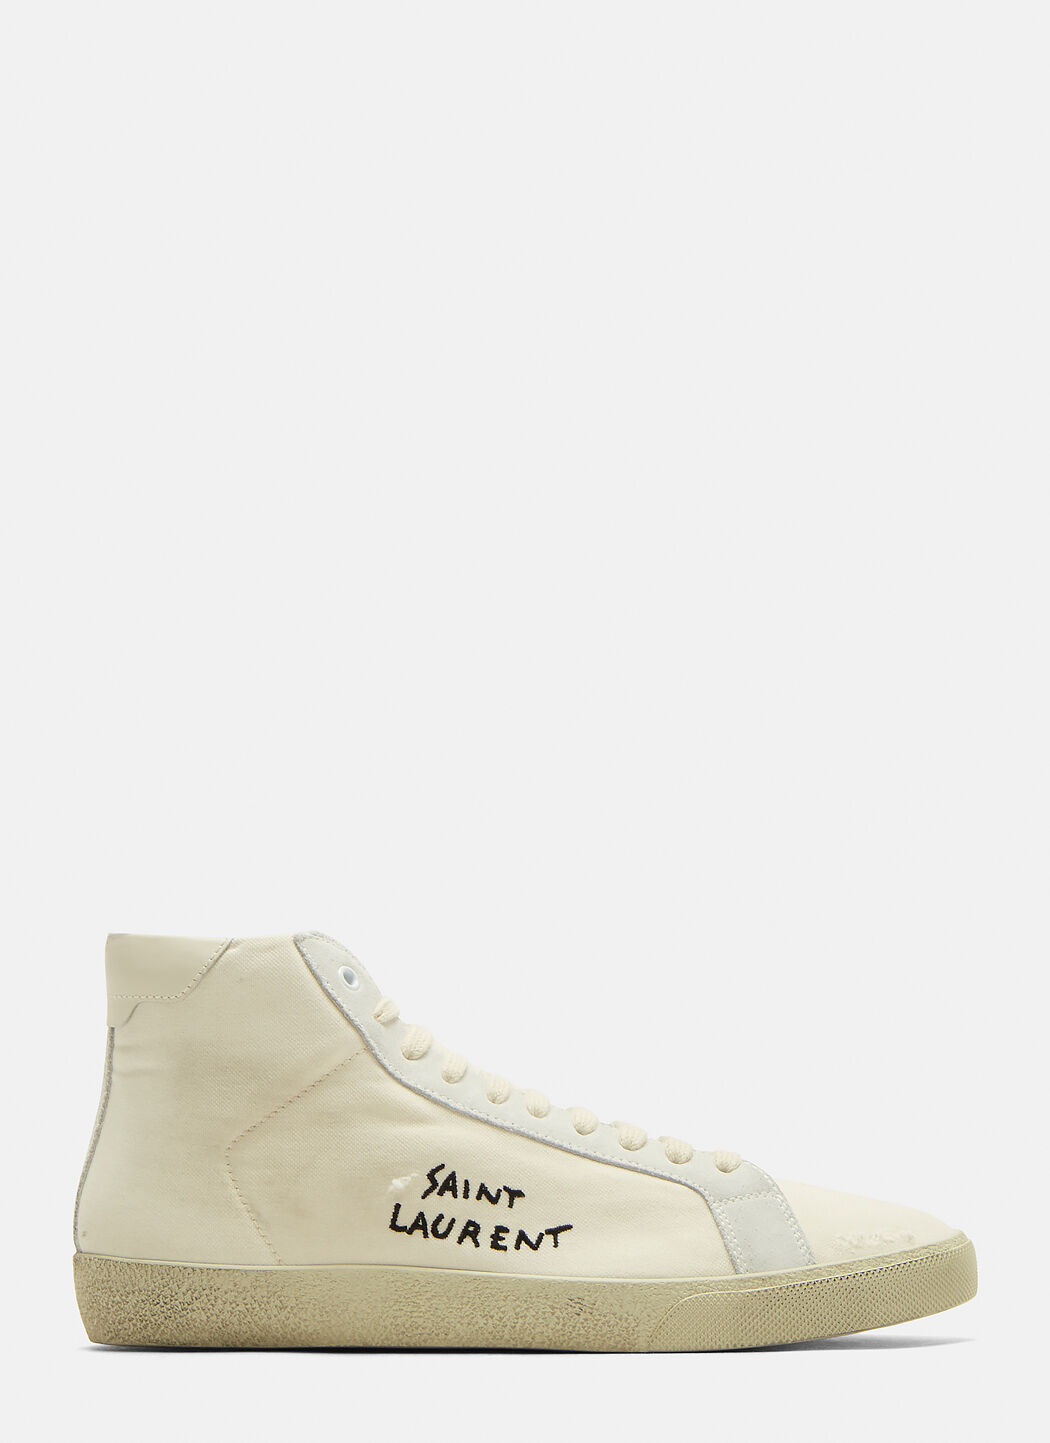 Saint Laurent Basket High Top Logo Sneakers in White | LN CC